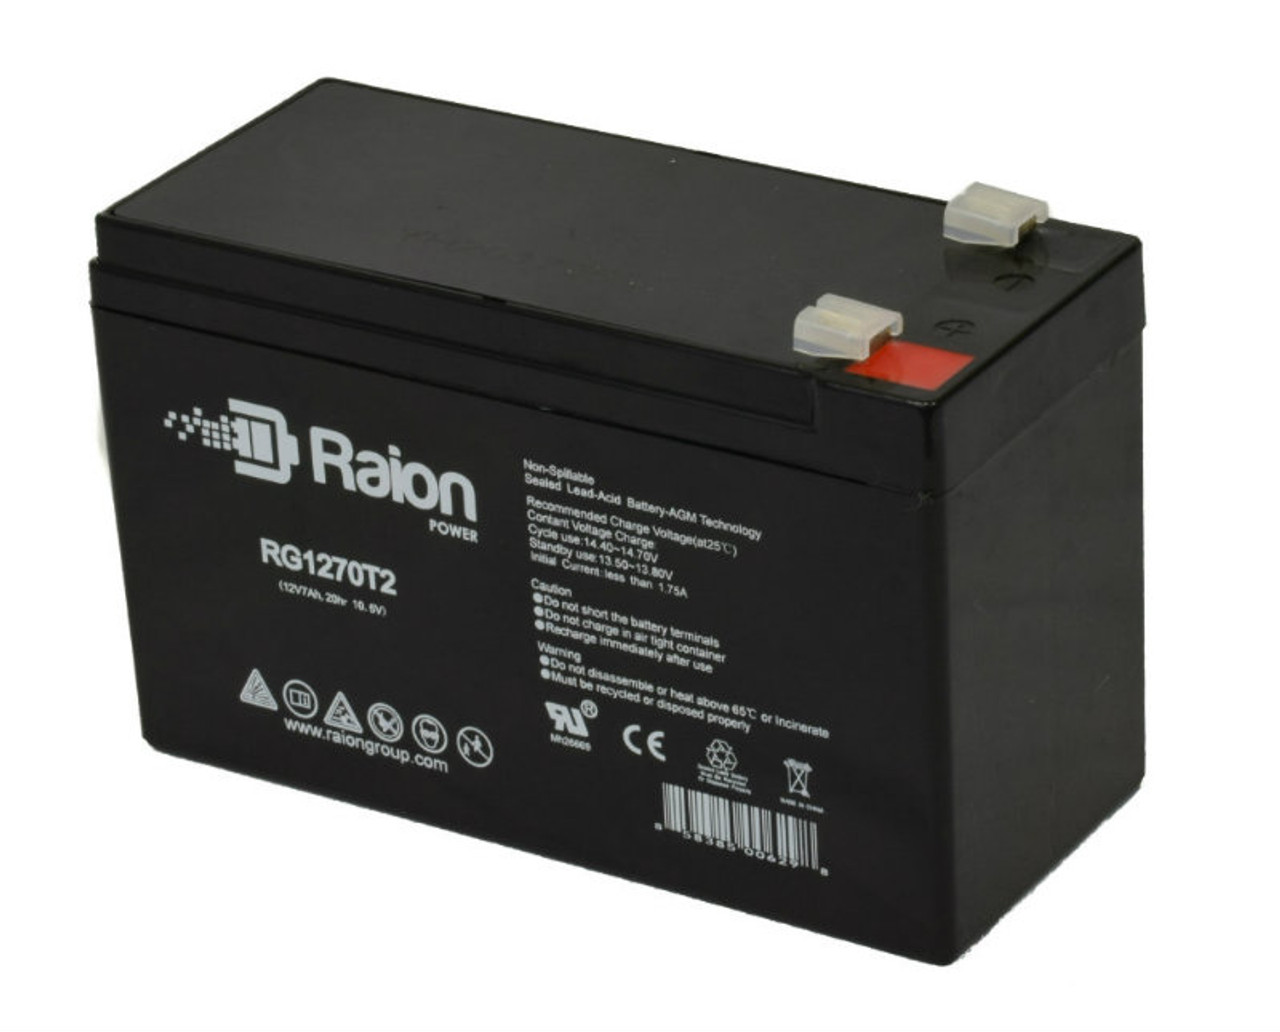 Raion Power RG1270T1 Replacement Battery for National Battery NB12-7.5